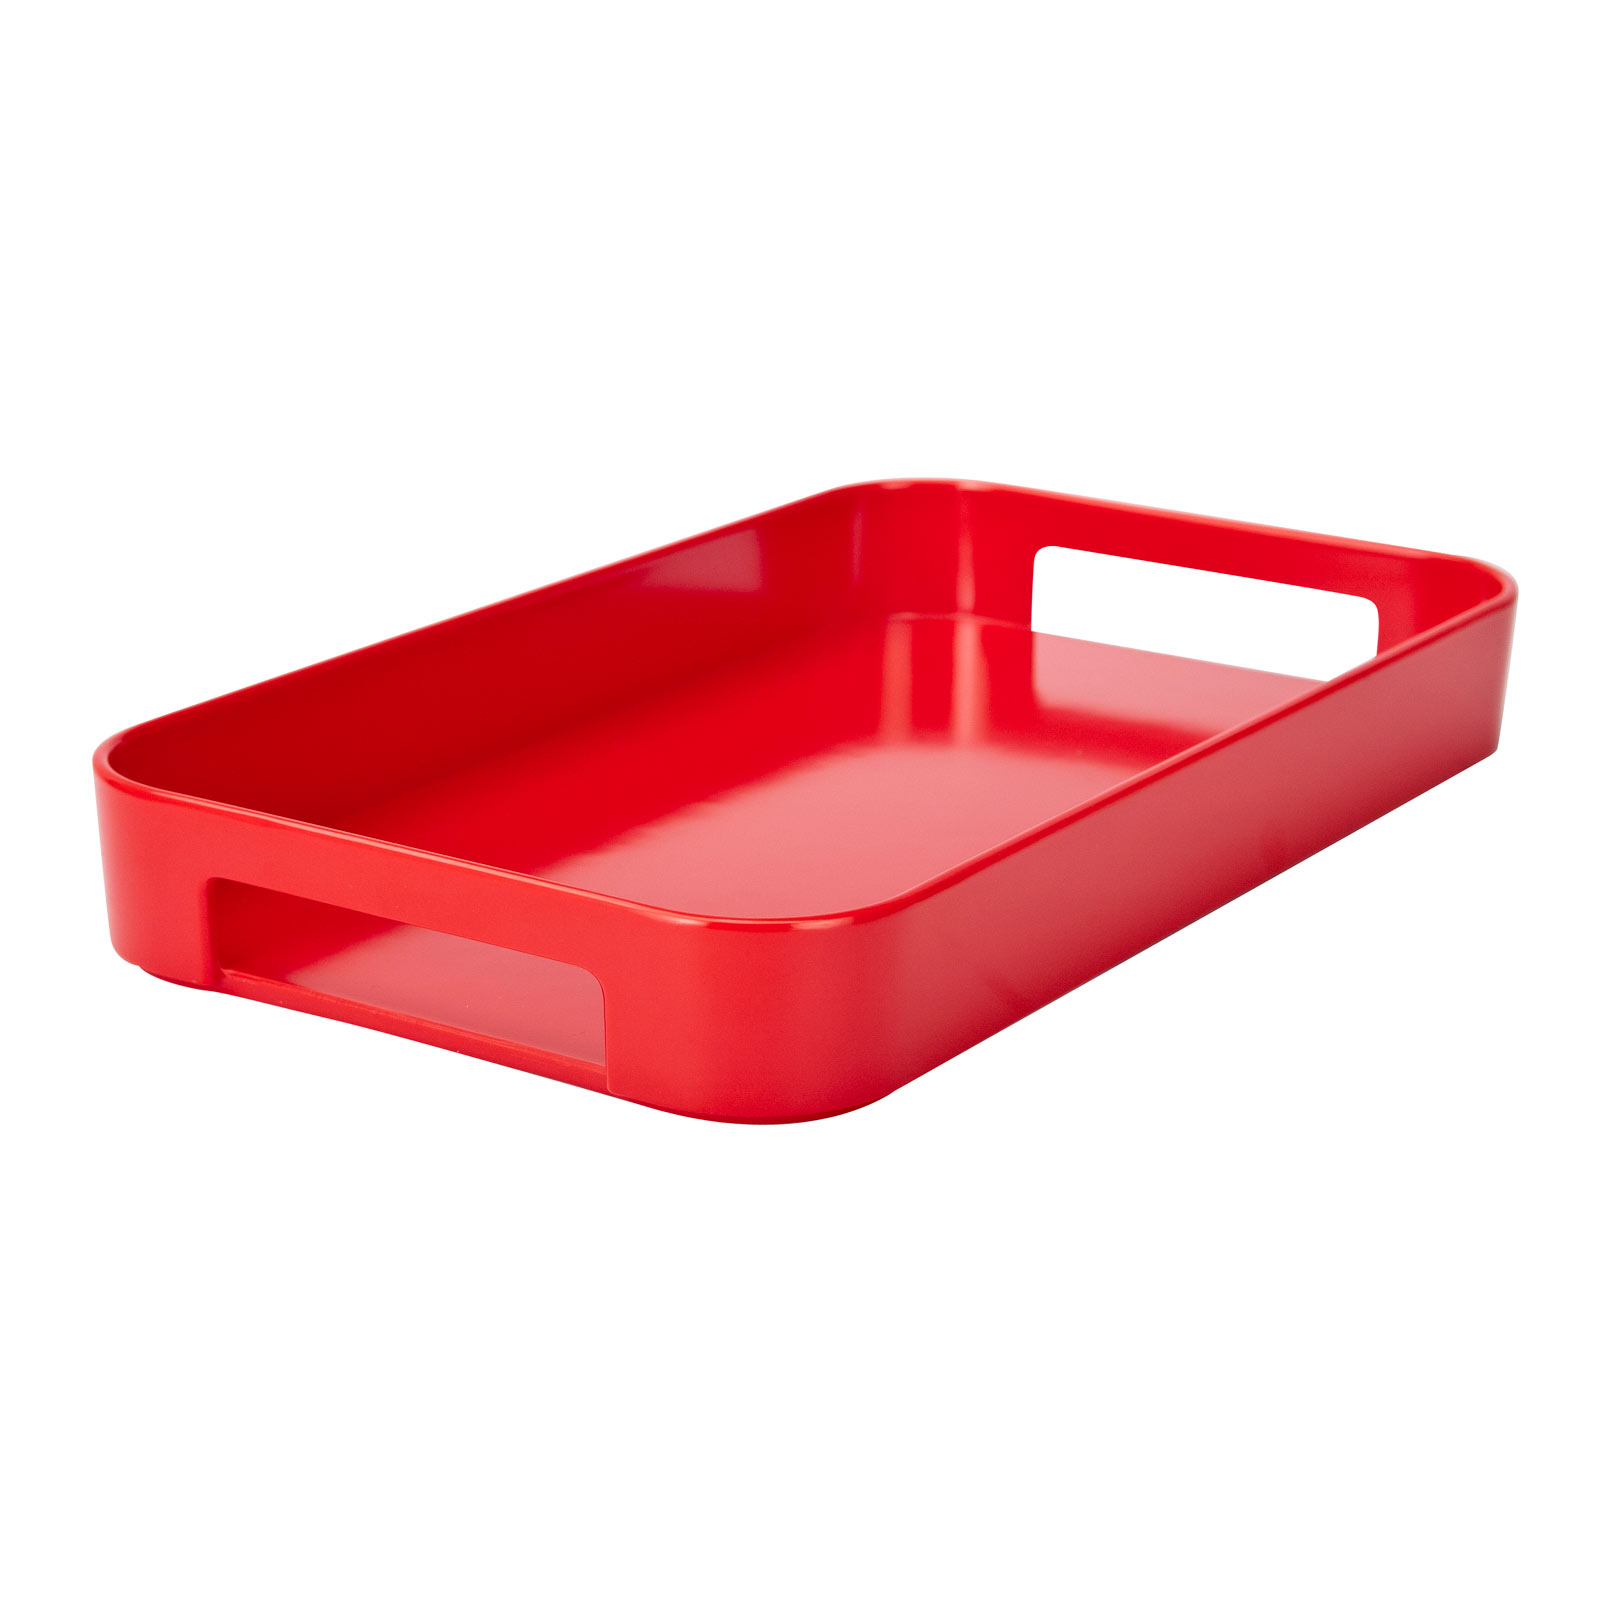 Gallery Serving Tray, Red